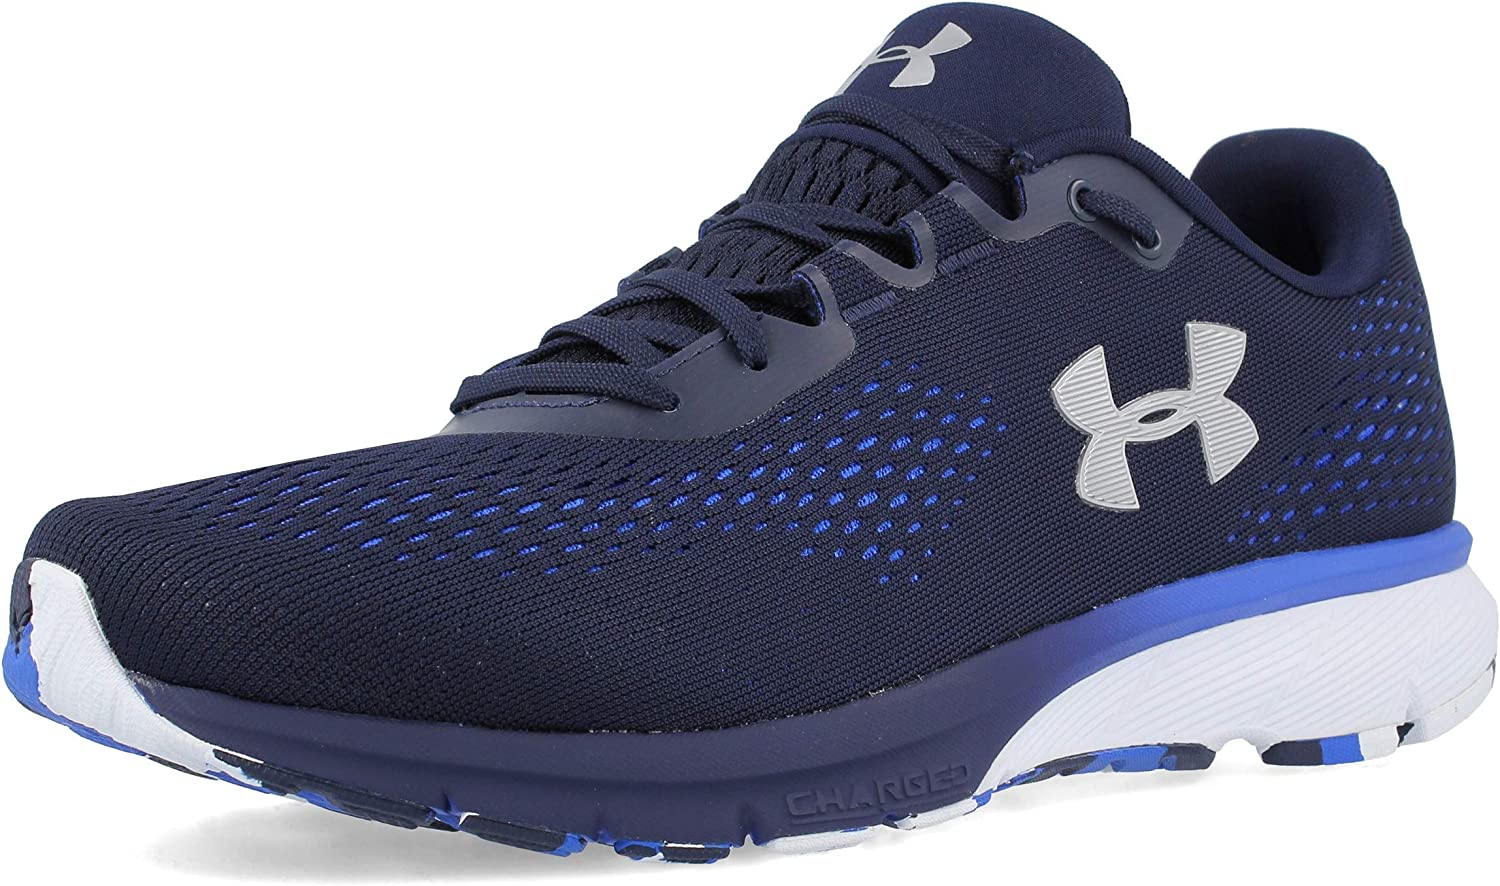 Under Armour Charged Spark Zapatillas para Correr - AW18-49.5 ...